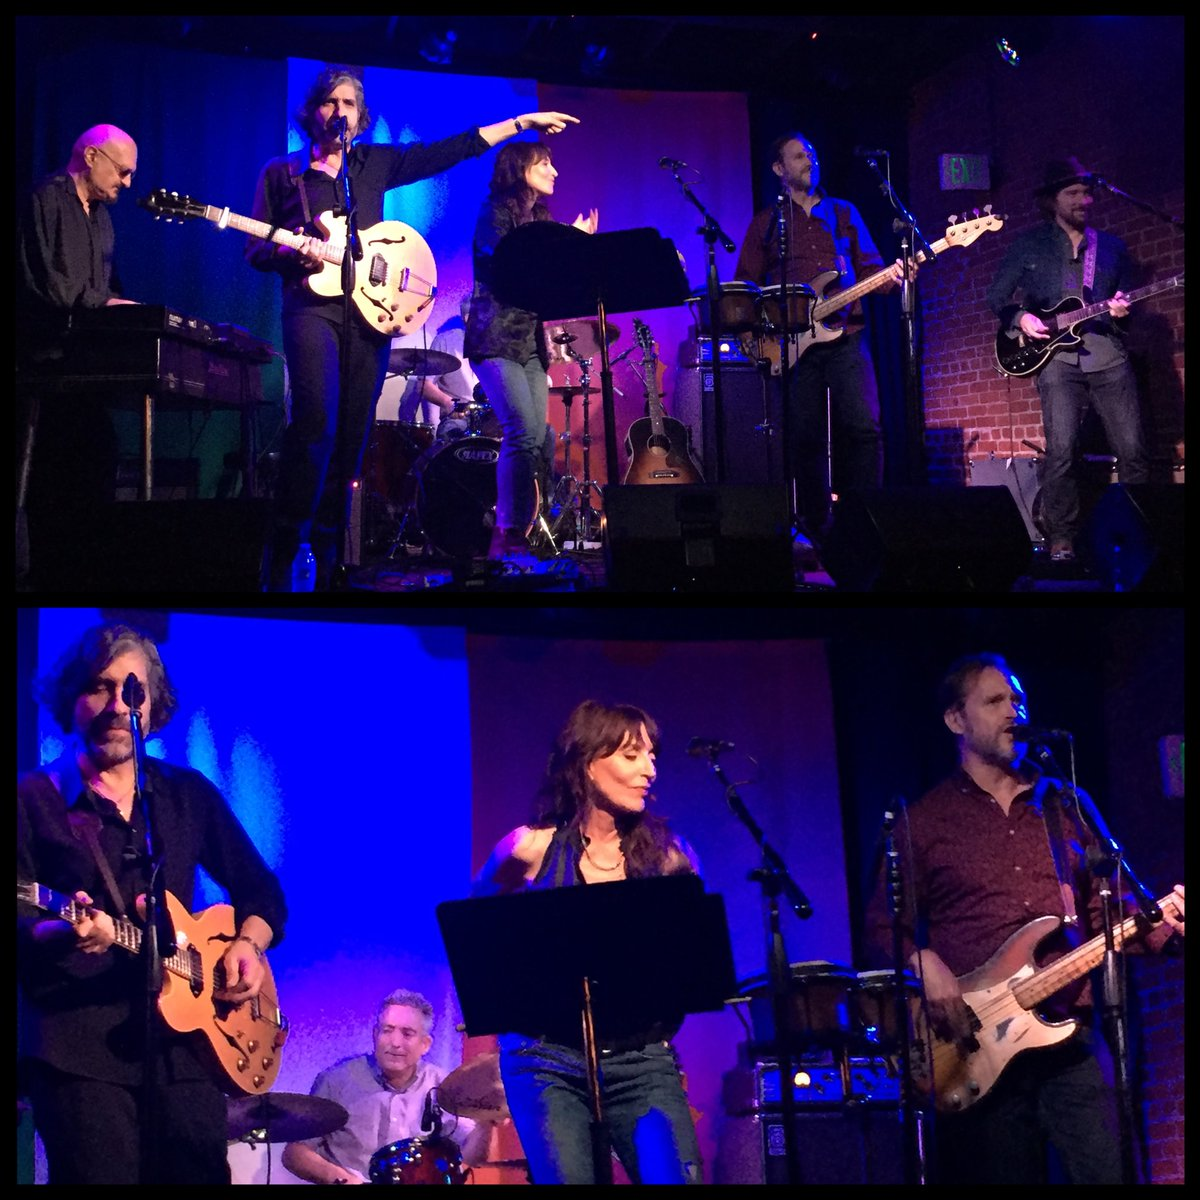 Hey @KateySagal I snapped these pics during your fab show on Wednesday! Thank you for the ticket @marshellefair